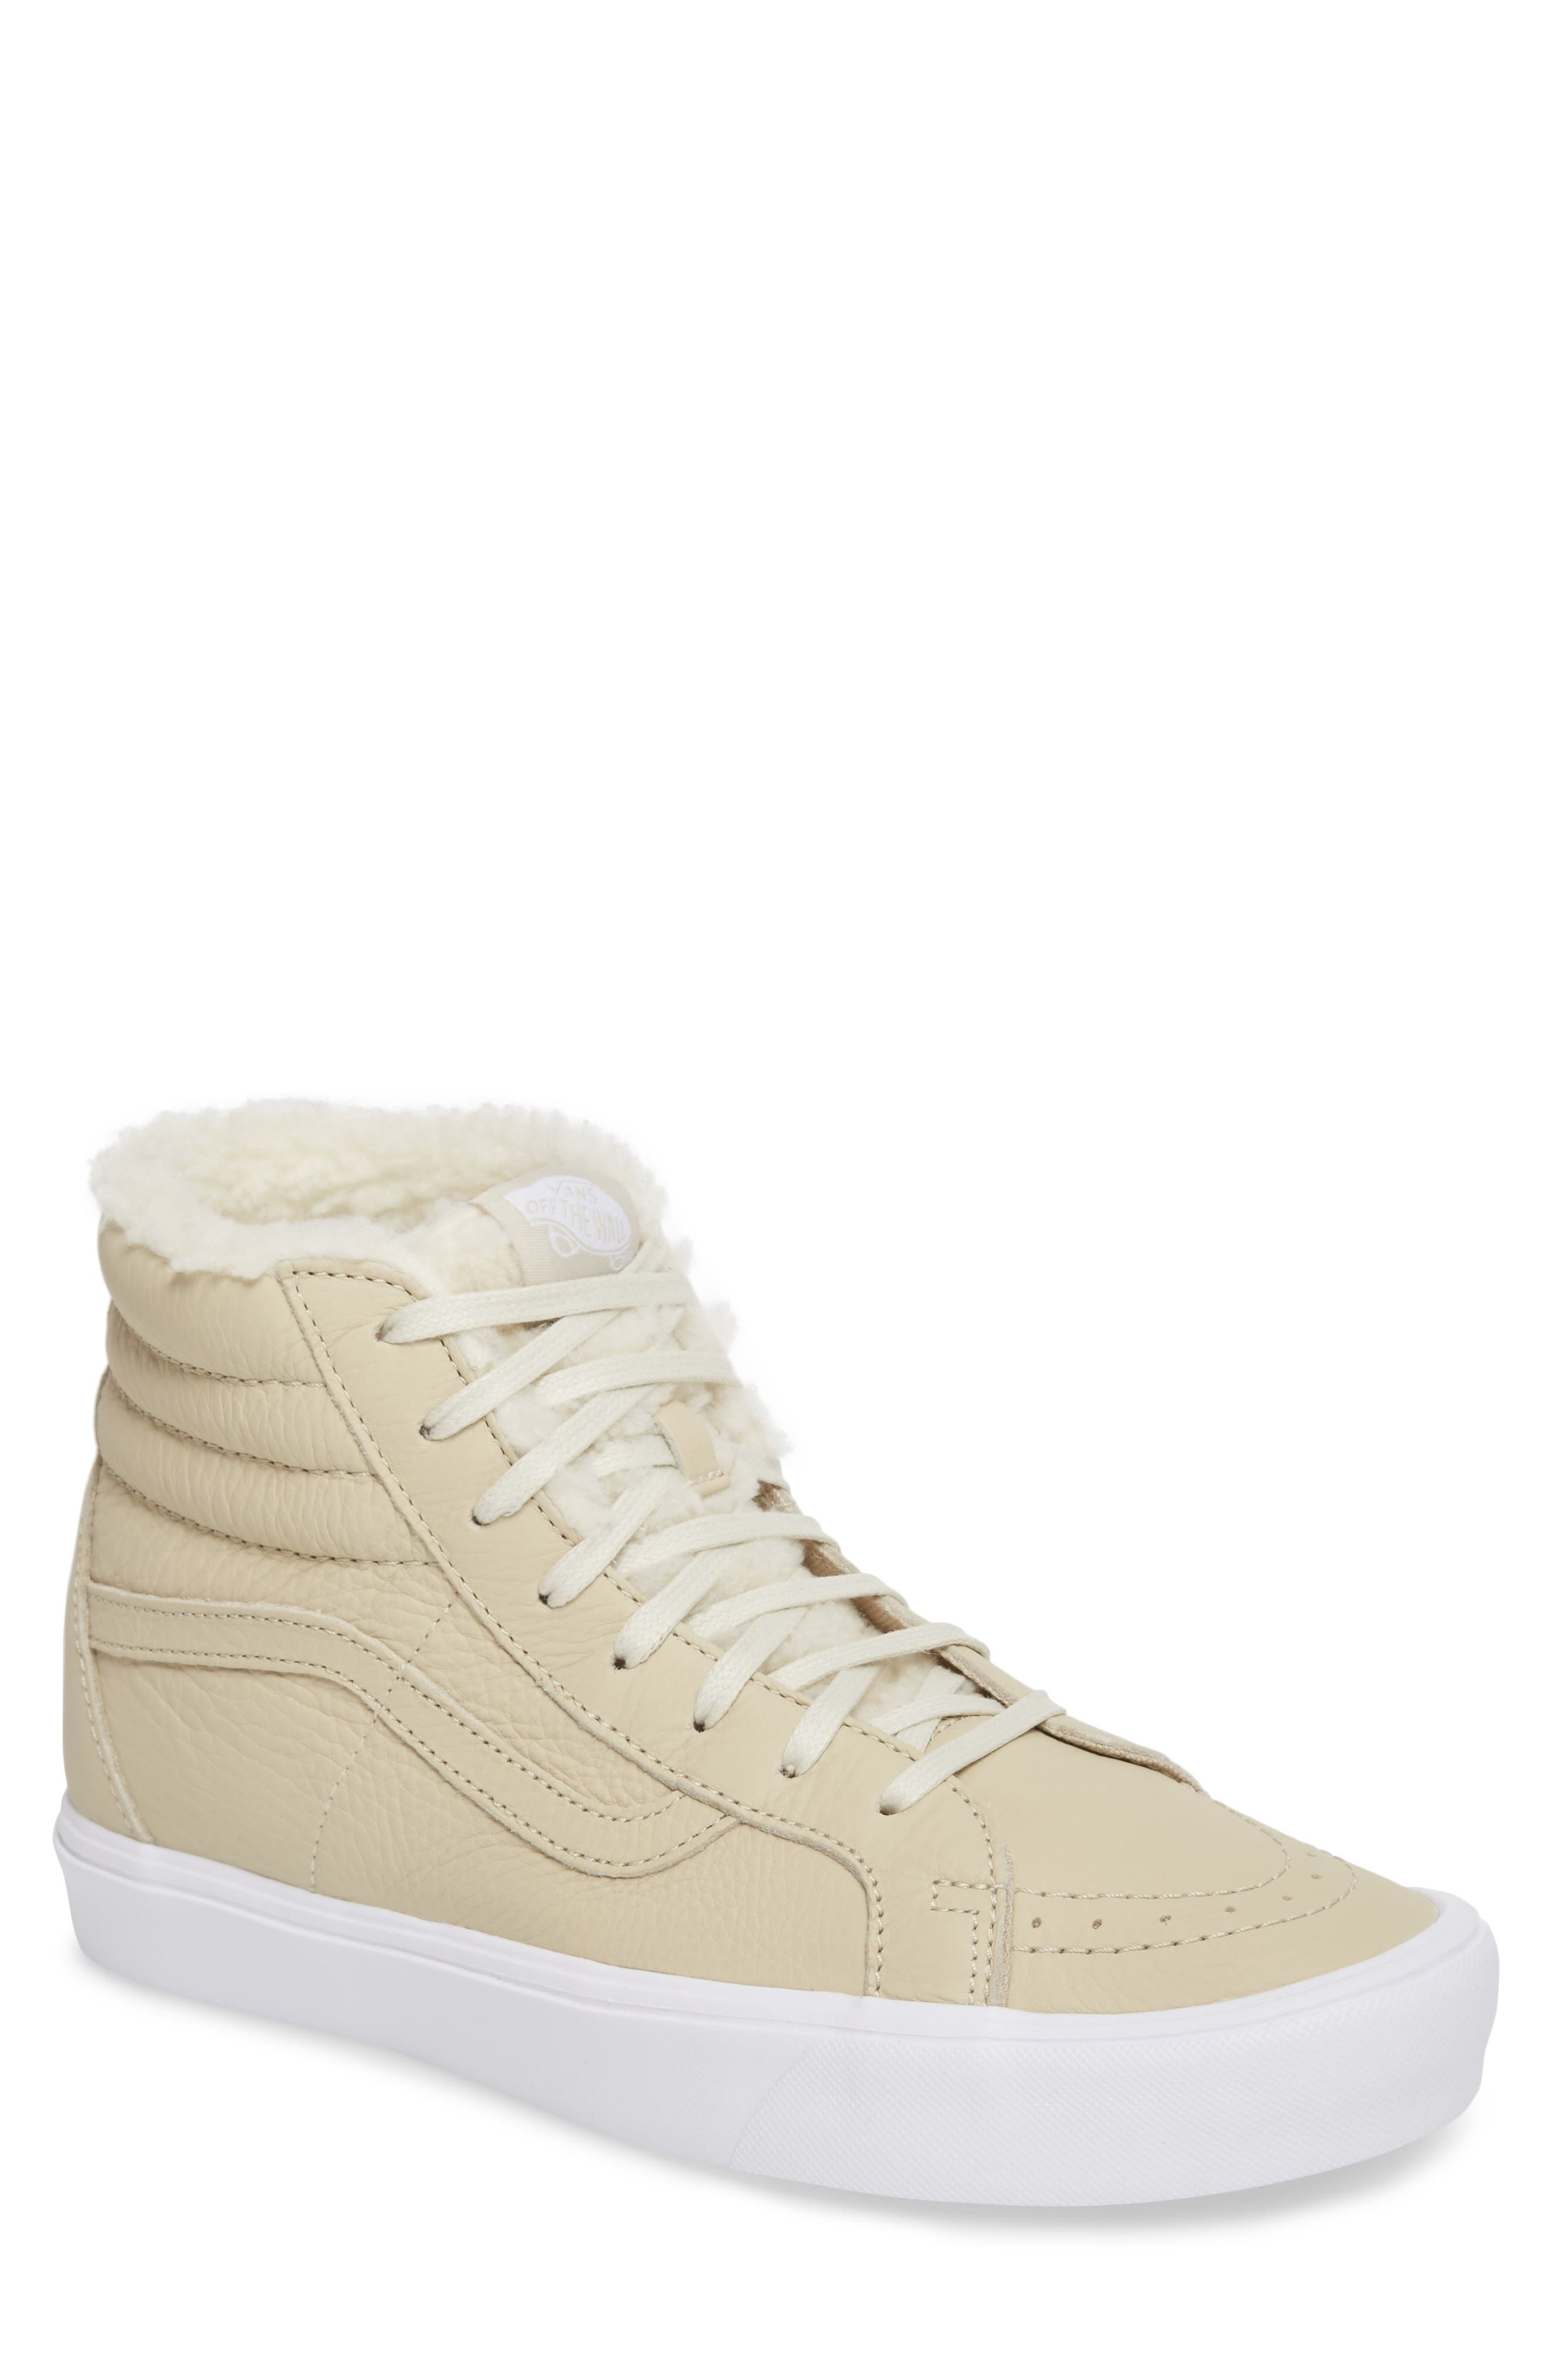 Vans SK8-Hi Reissue DX Lite Sneaker with Faux-Fur Lining (Men)